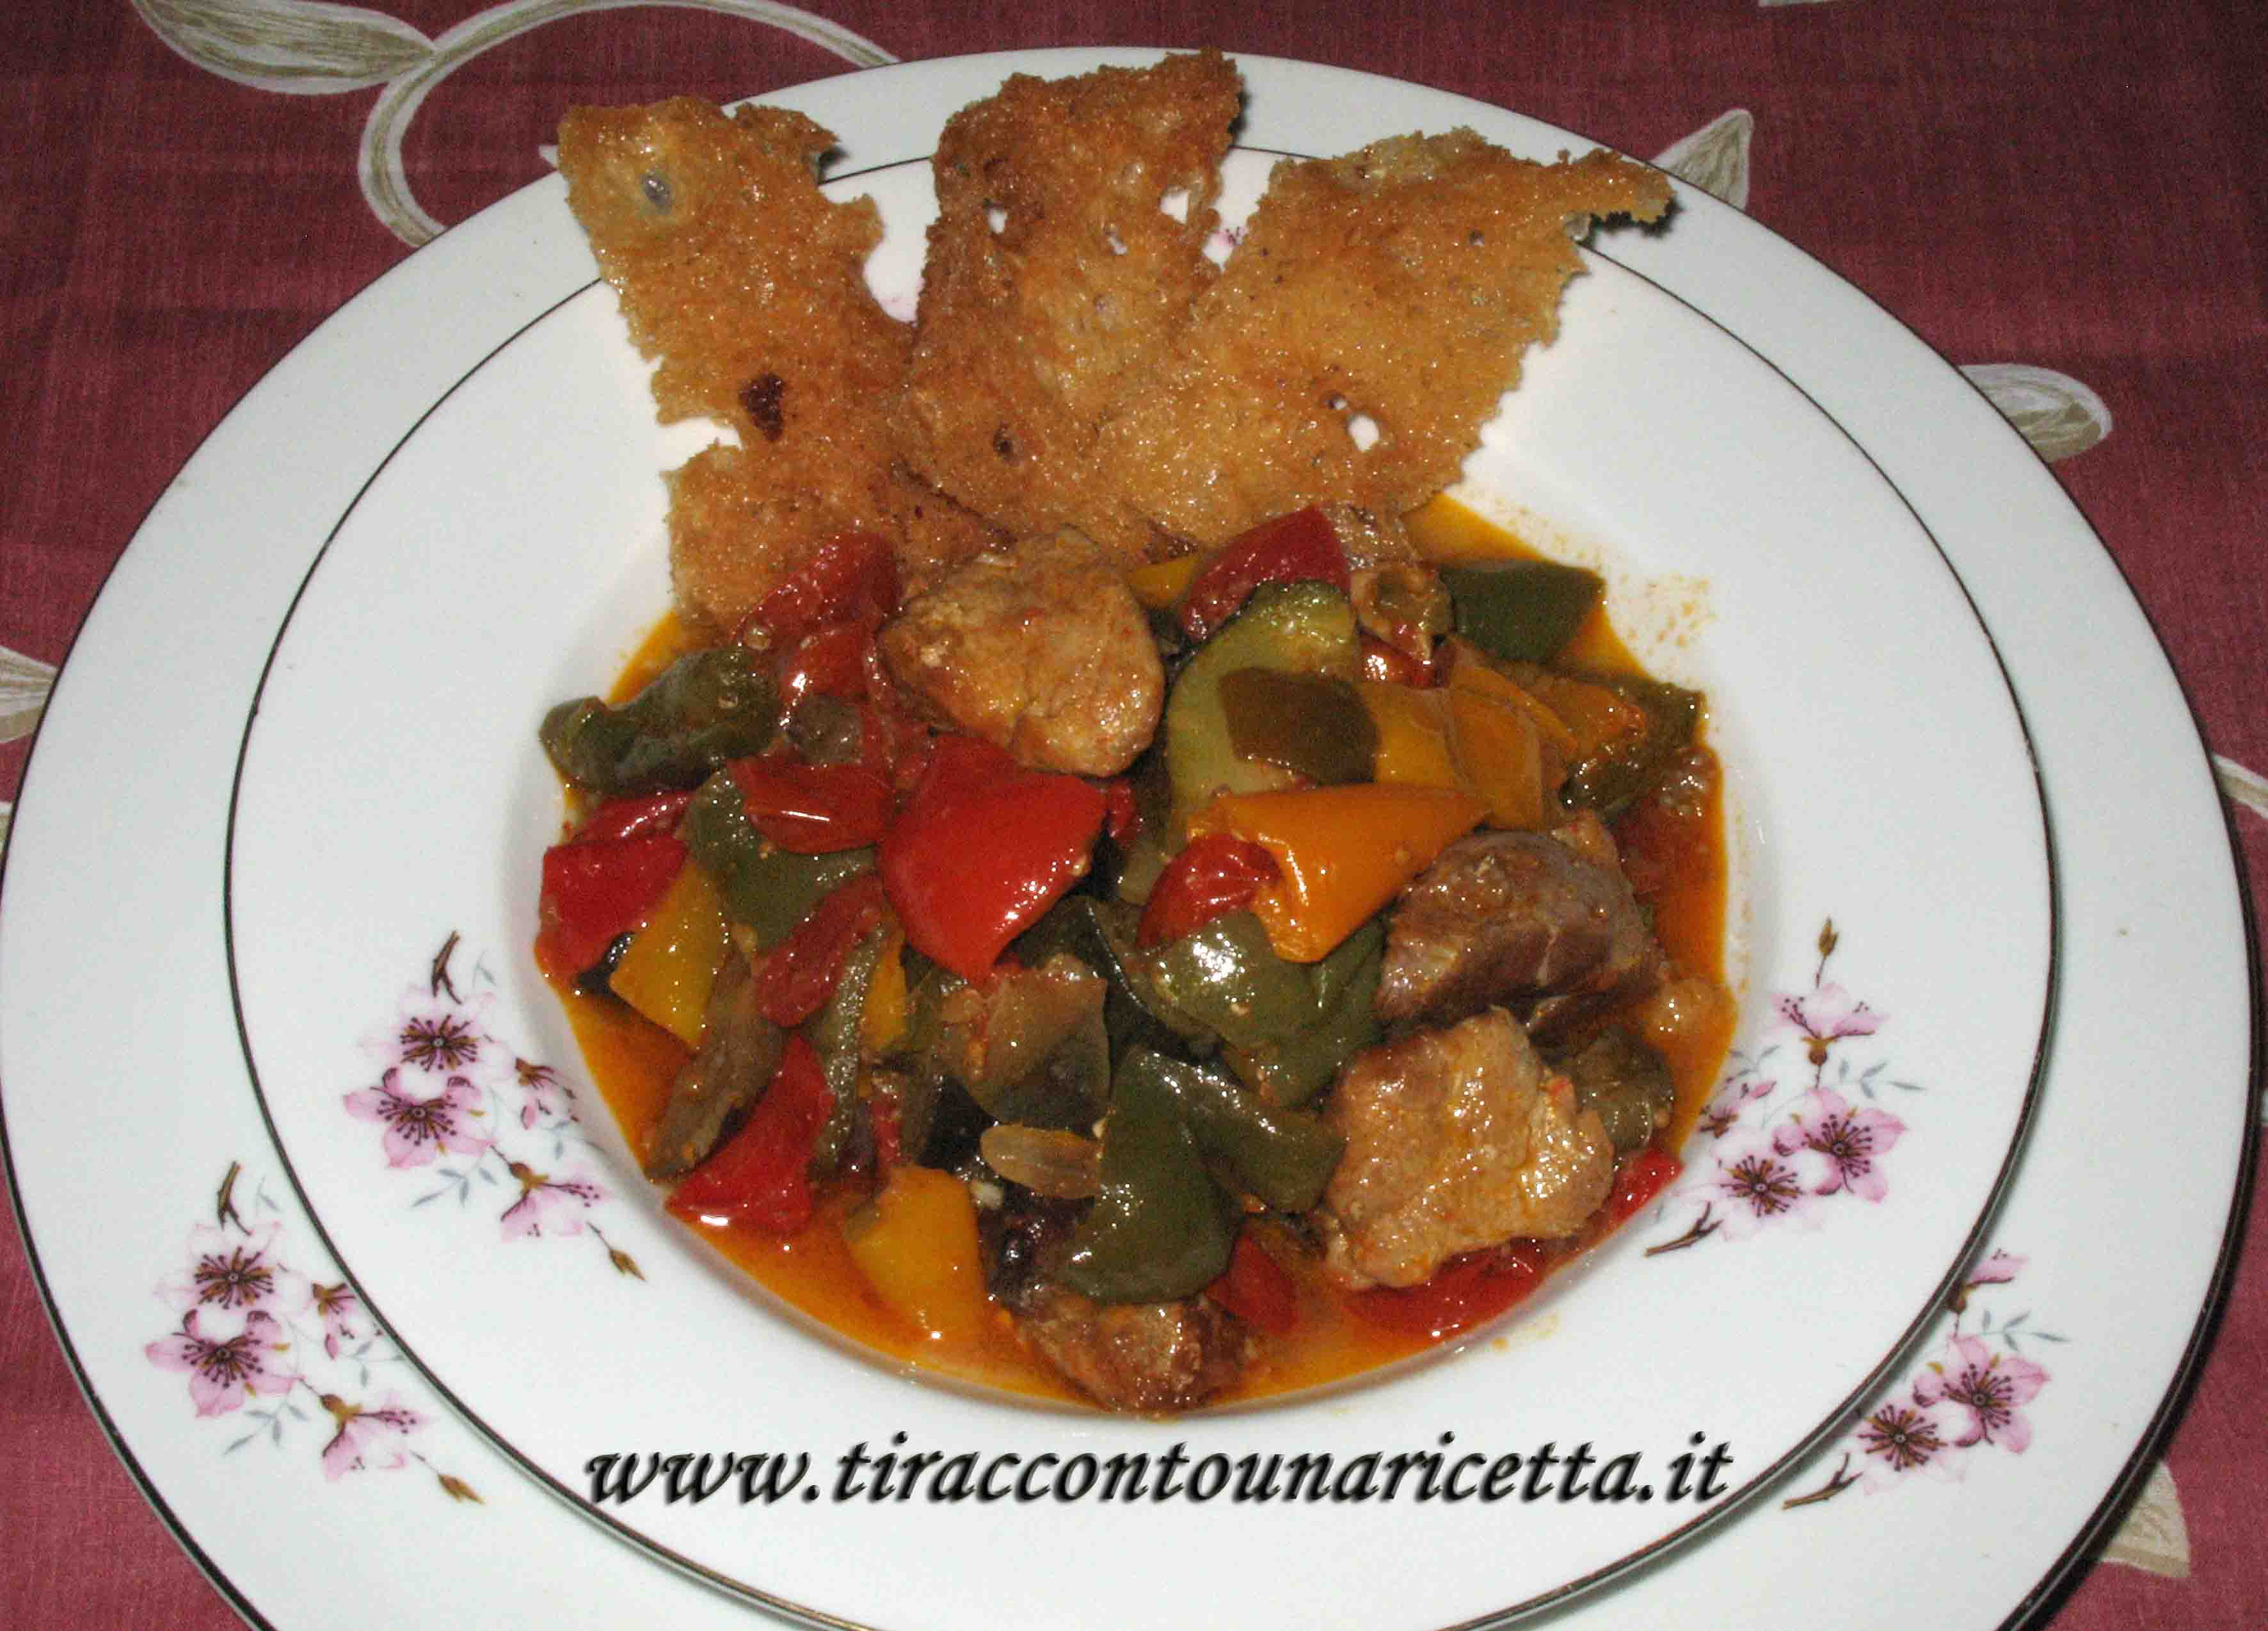 Pork stew with peppers, zucchini and eggplant